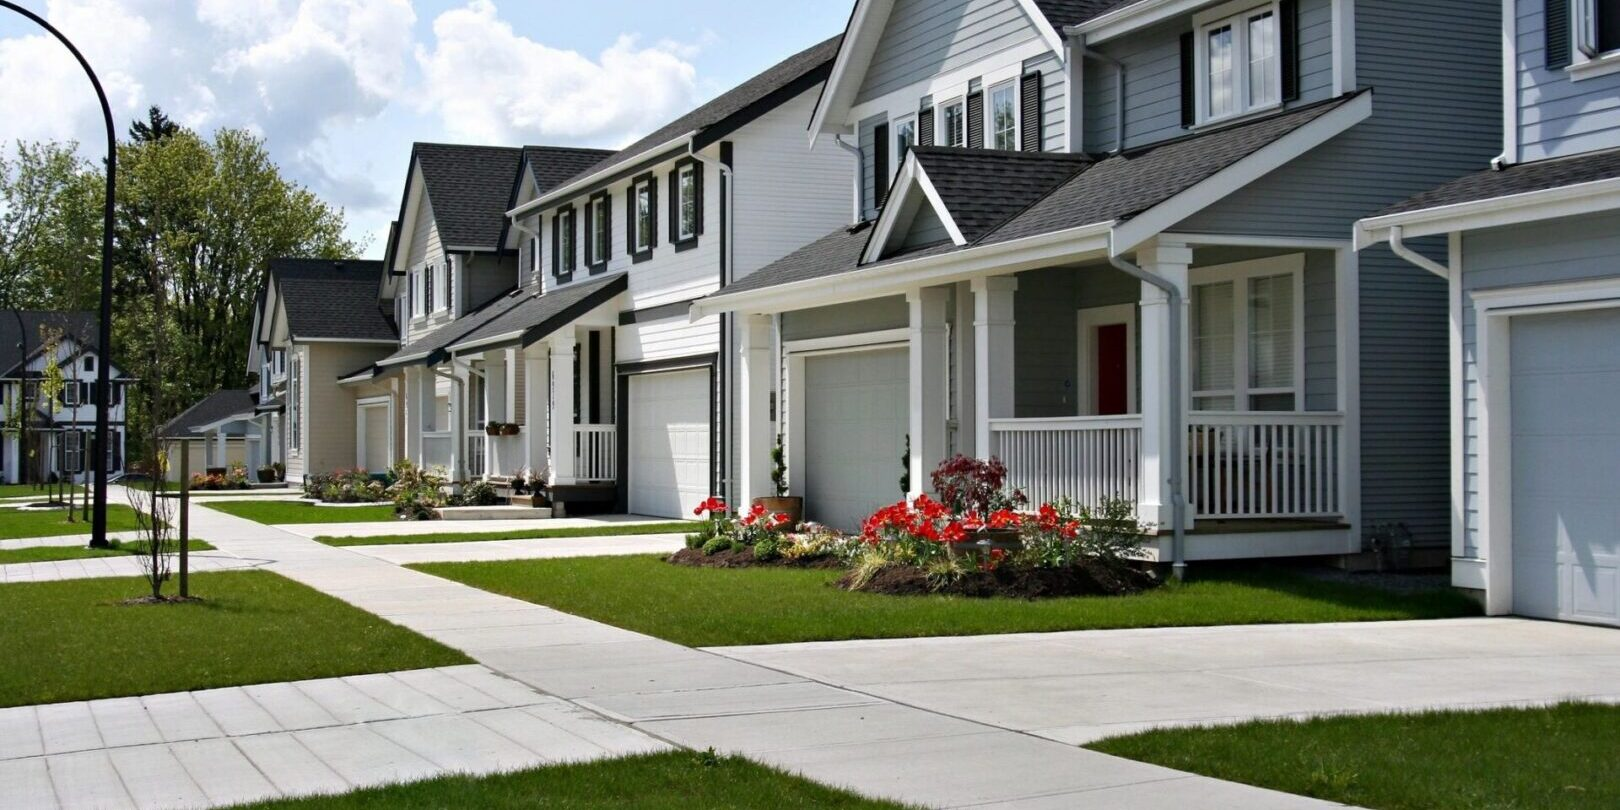 Beautiful homes with clean-cut front yard